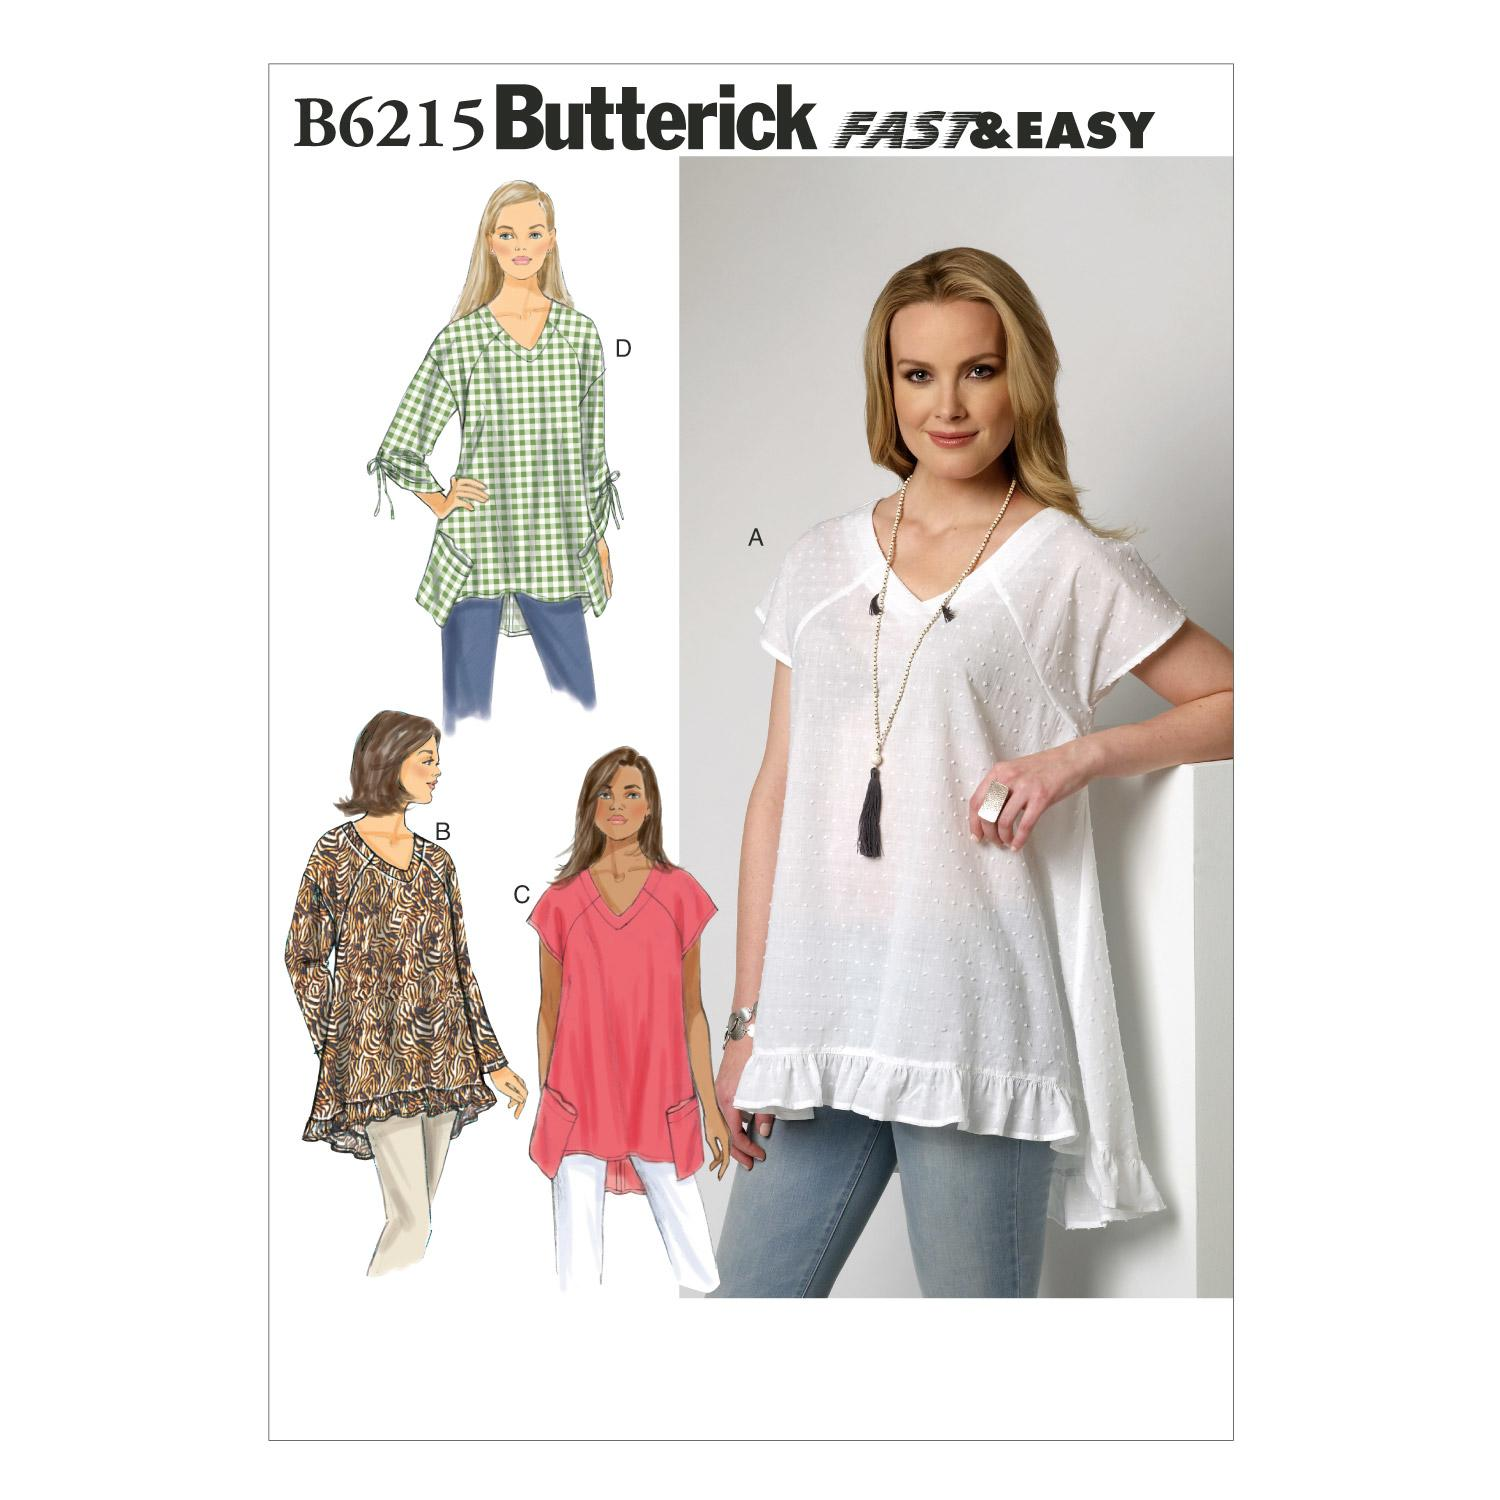 Butterick B6215 Misses' Top